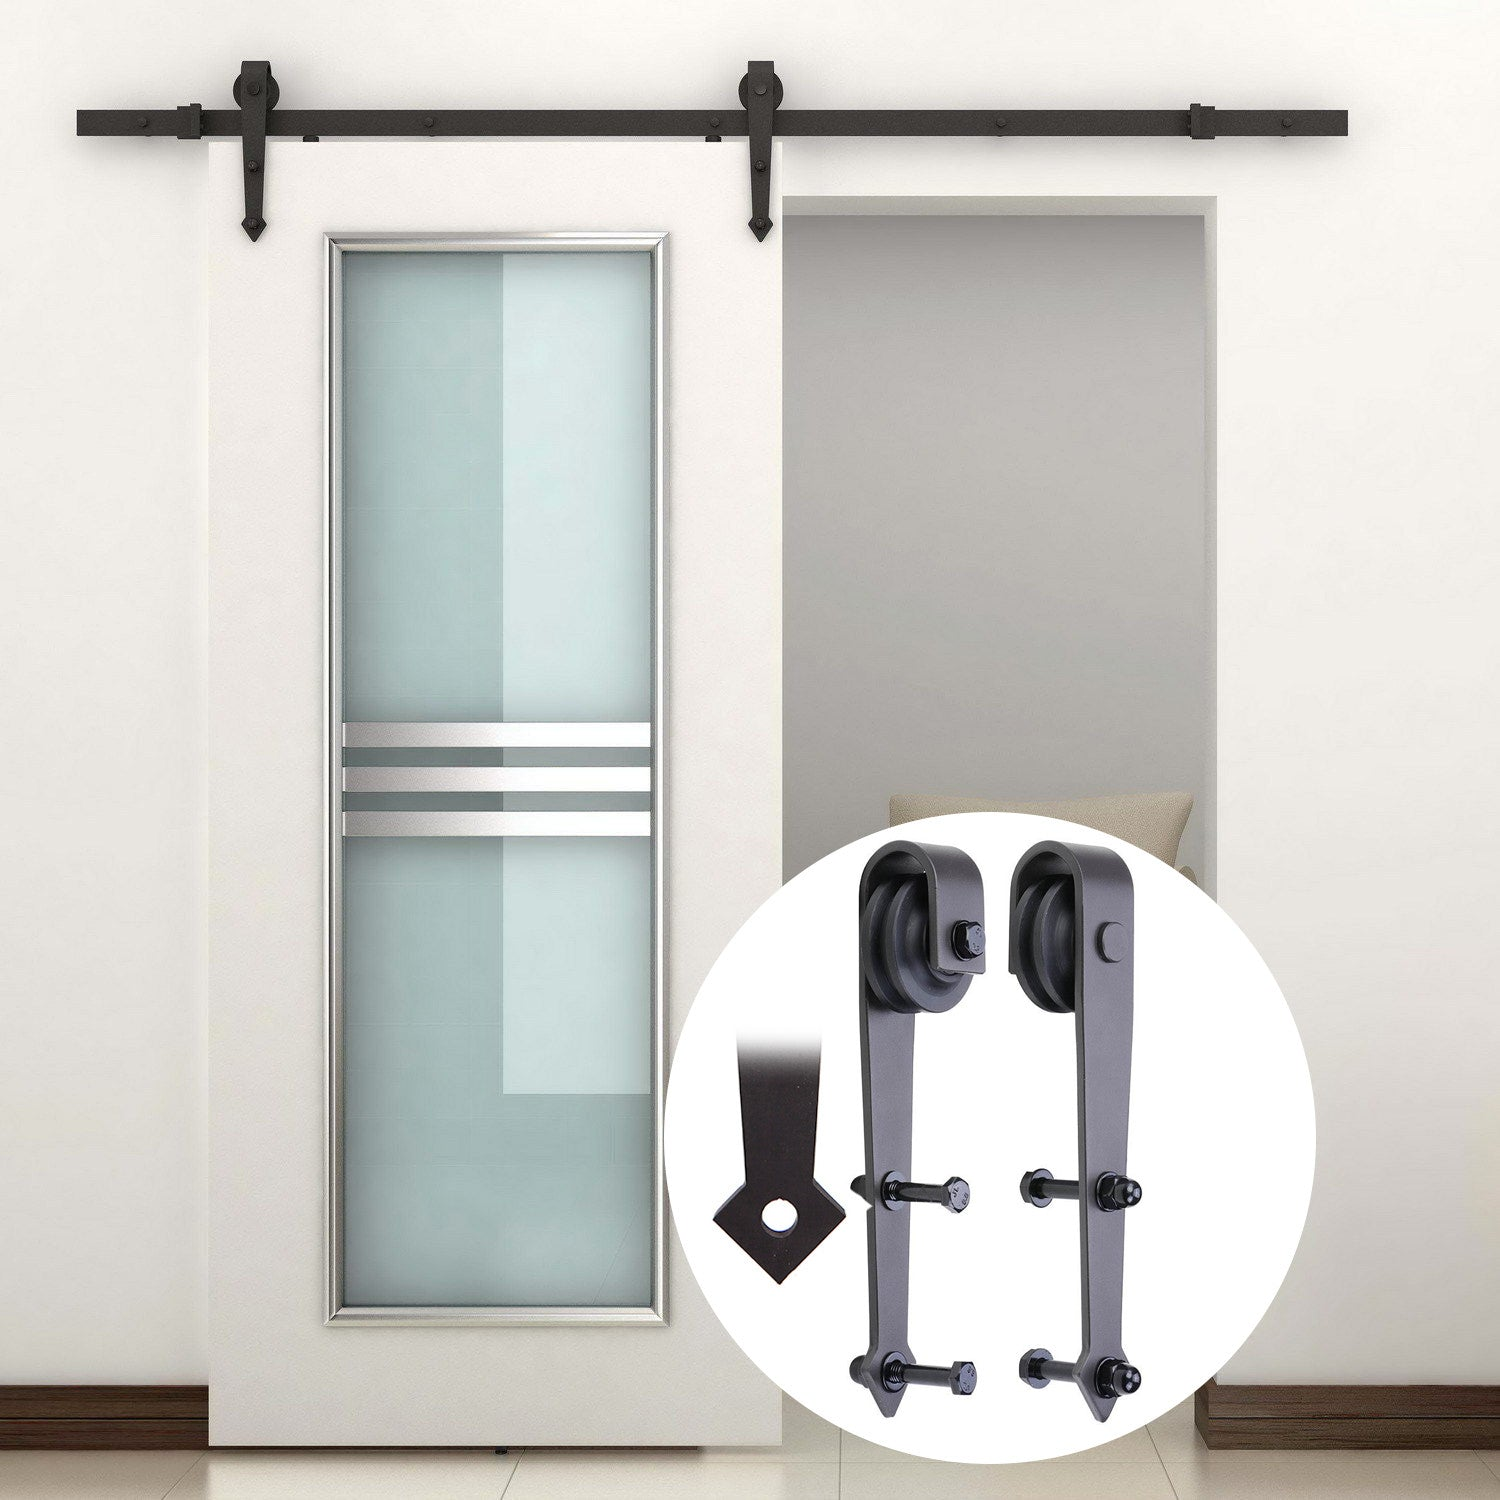 Superieur GOSO Sliding Barn Door Hardware Kit 6.6 Ft (2 M) Solid Steel Decorative  Rail And Roller, Arrow